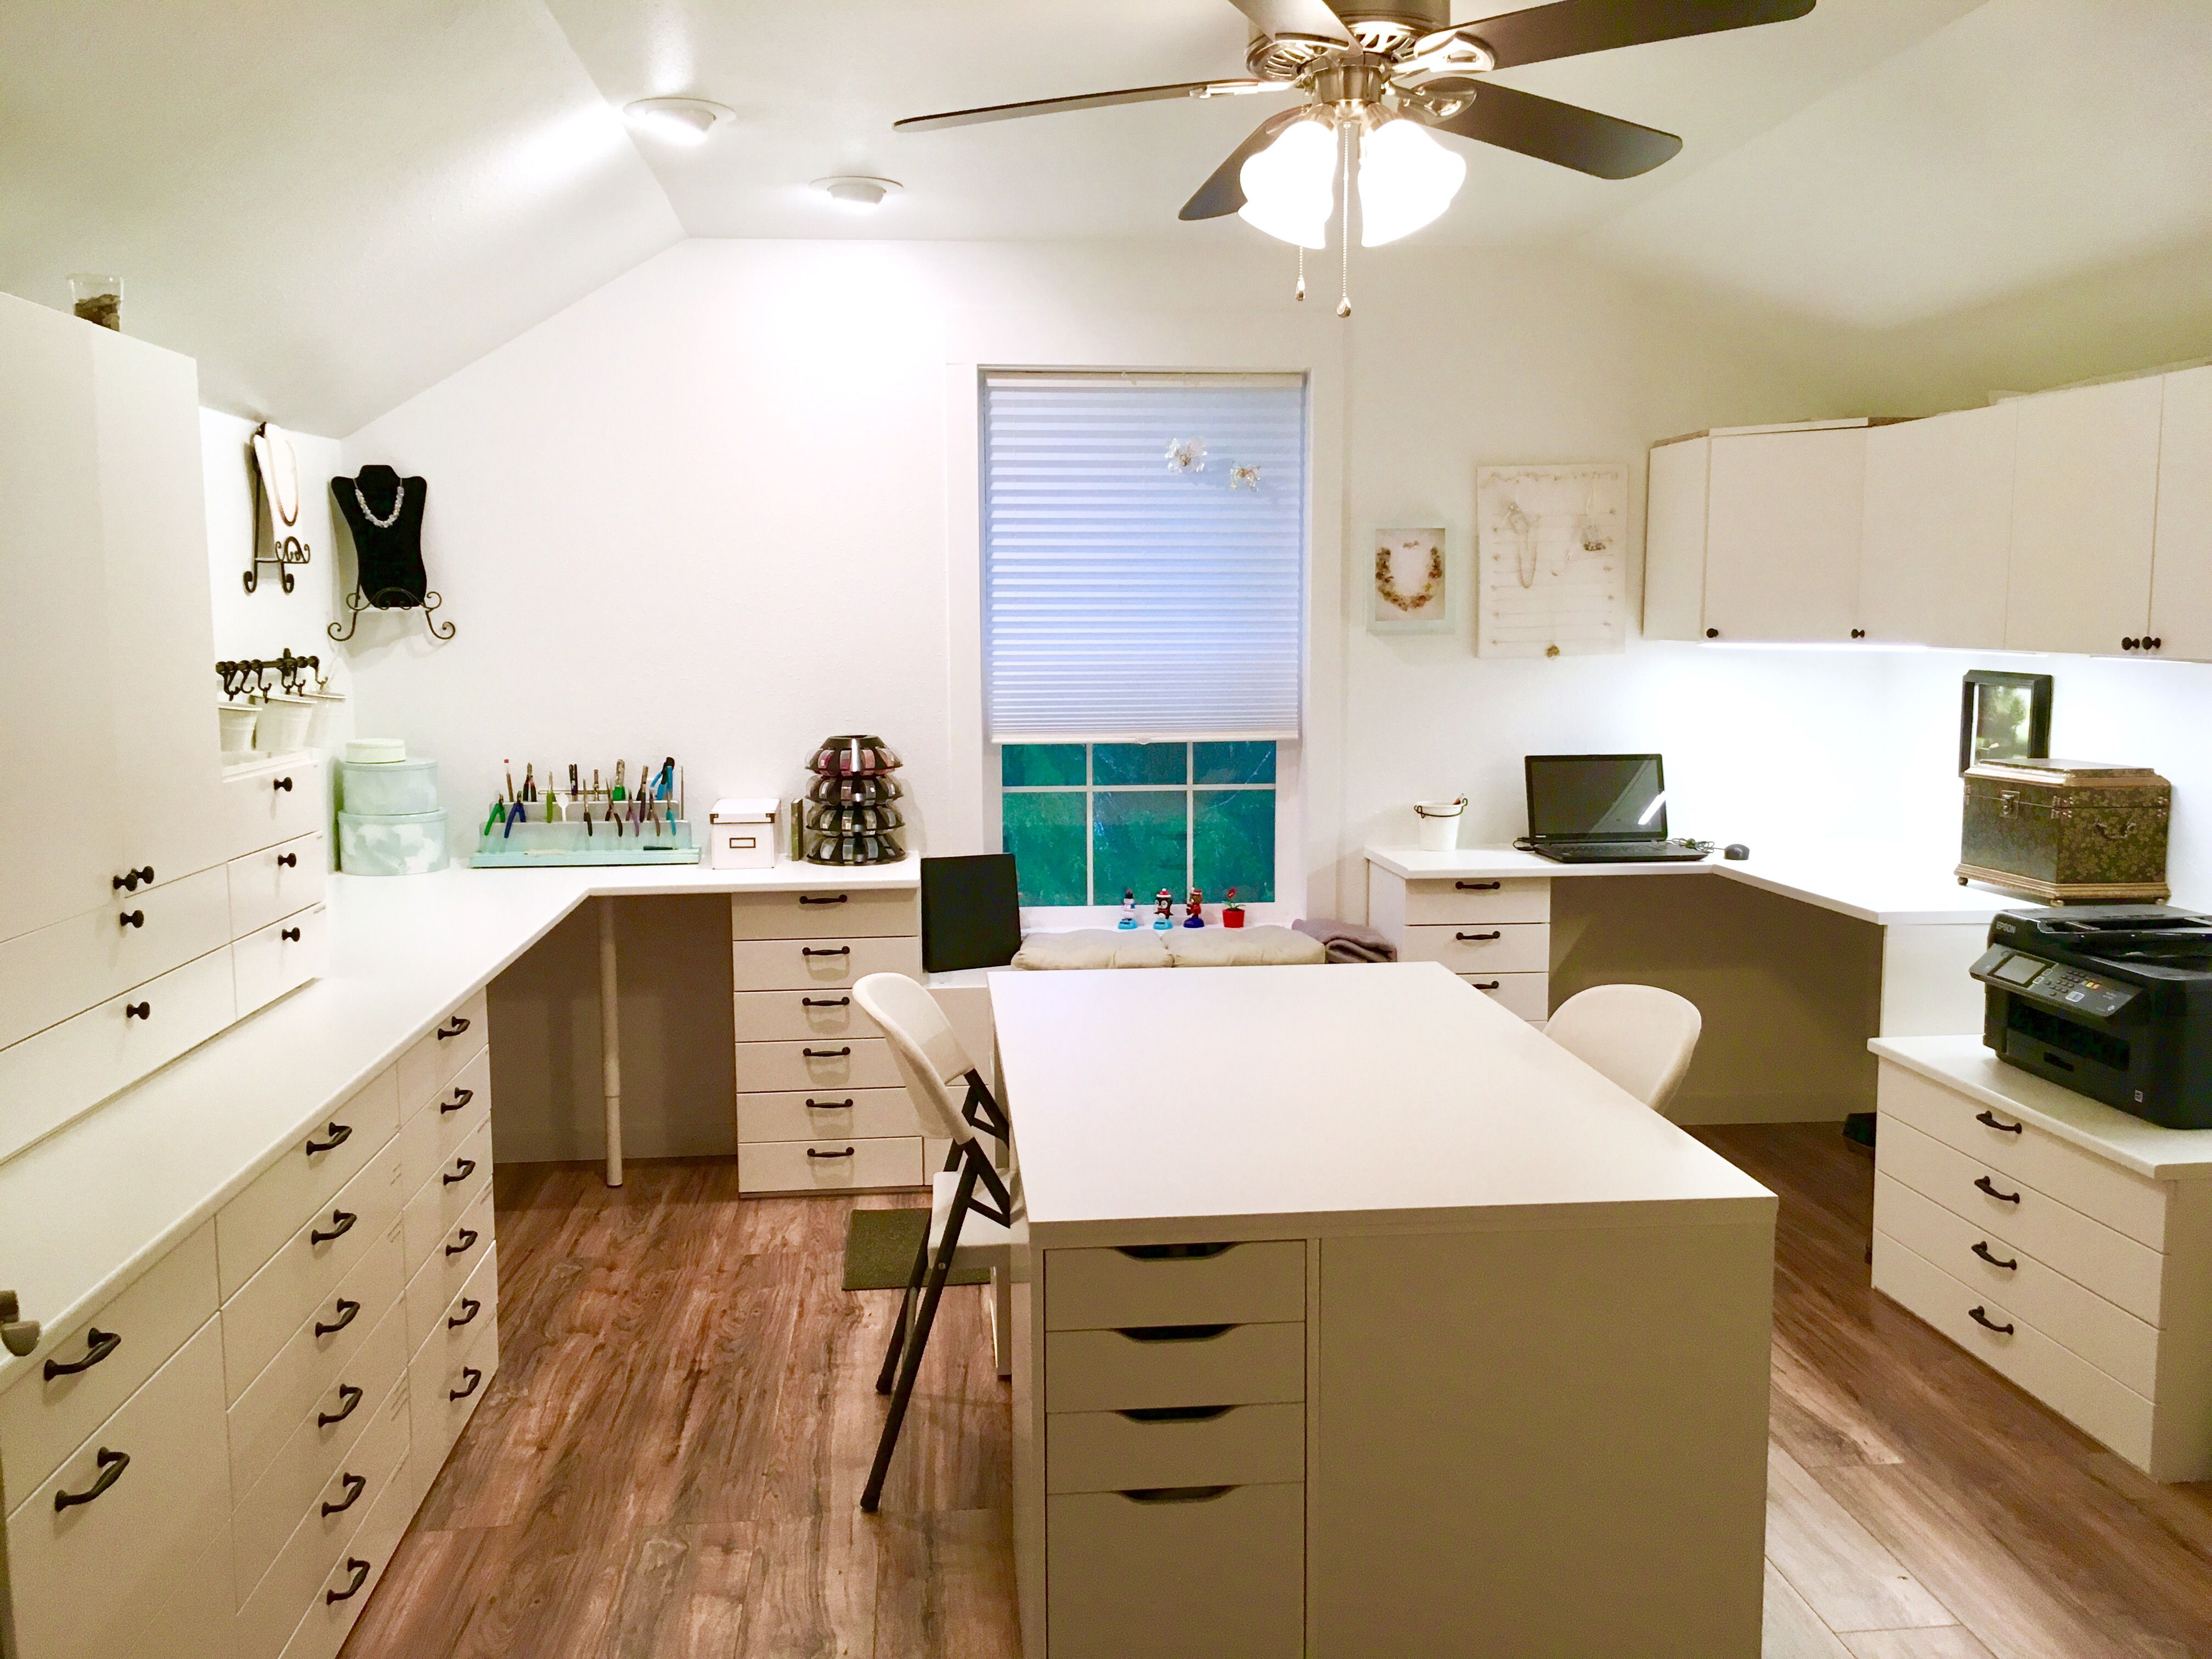 A perfect multihobby room. IKEA kitchen line the